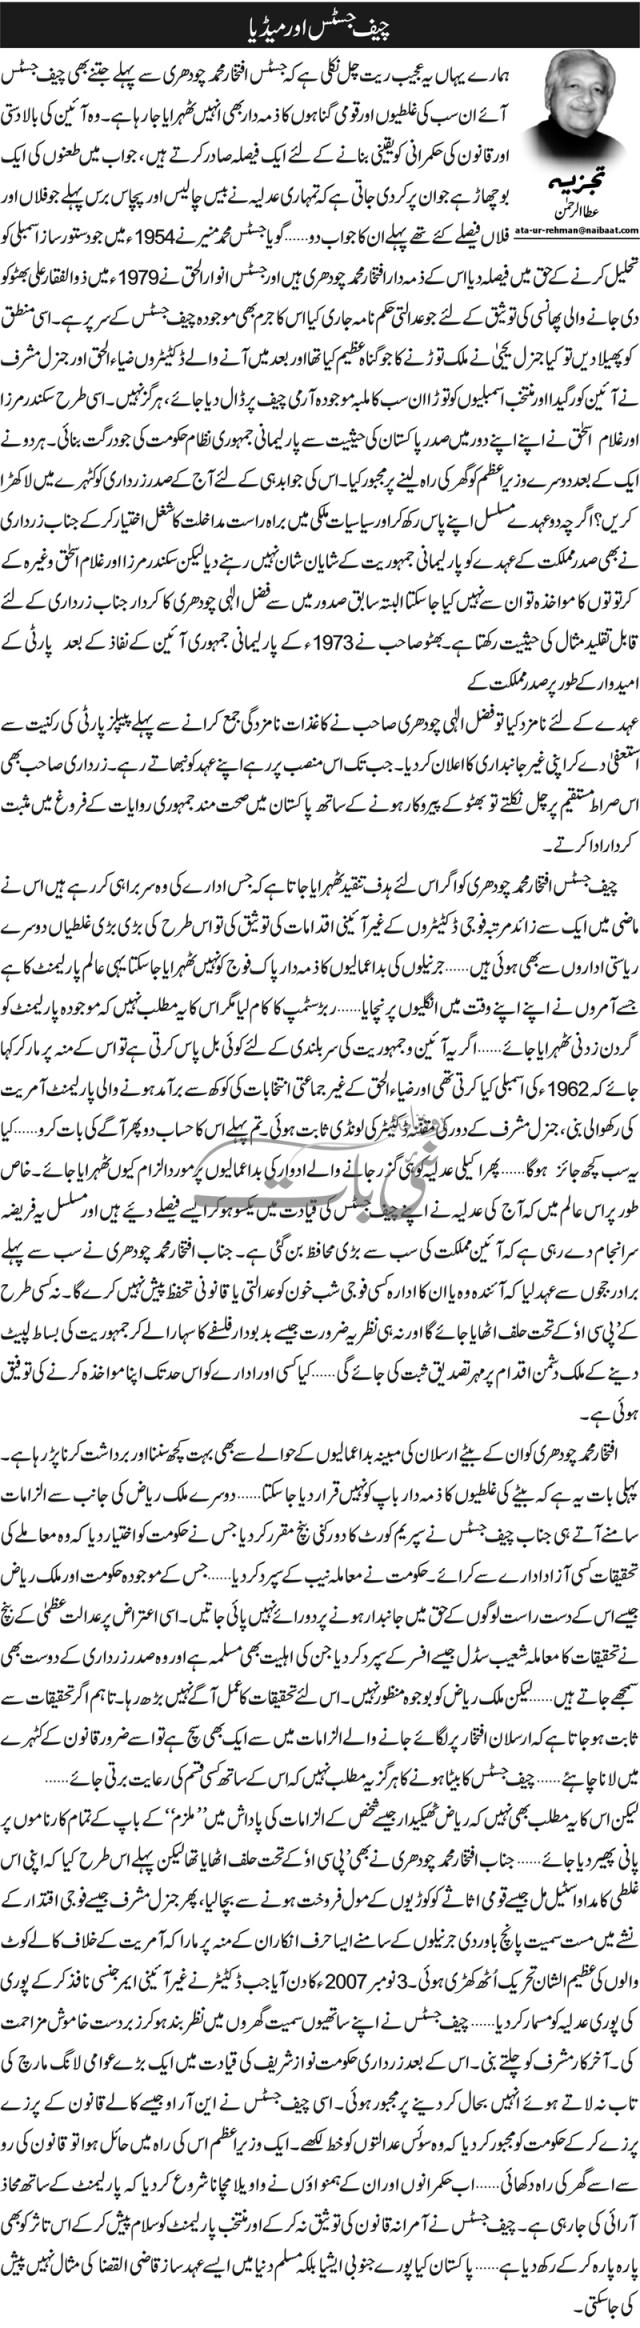 Chief Justice aur media - Ata ur Rehman